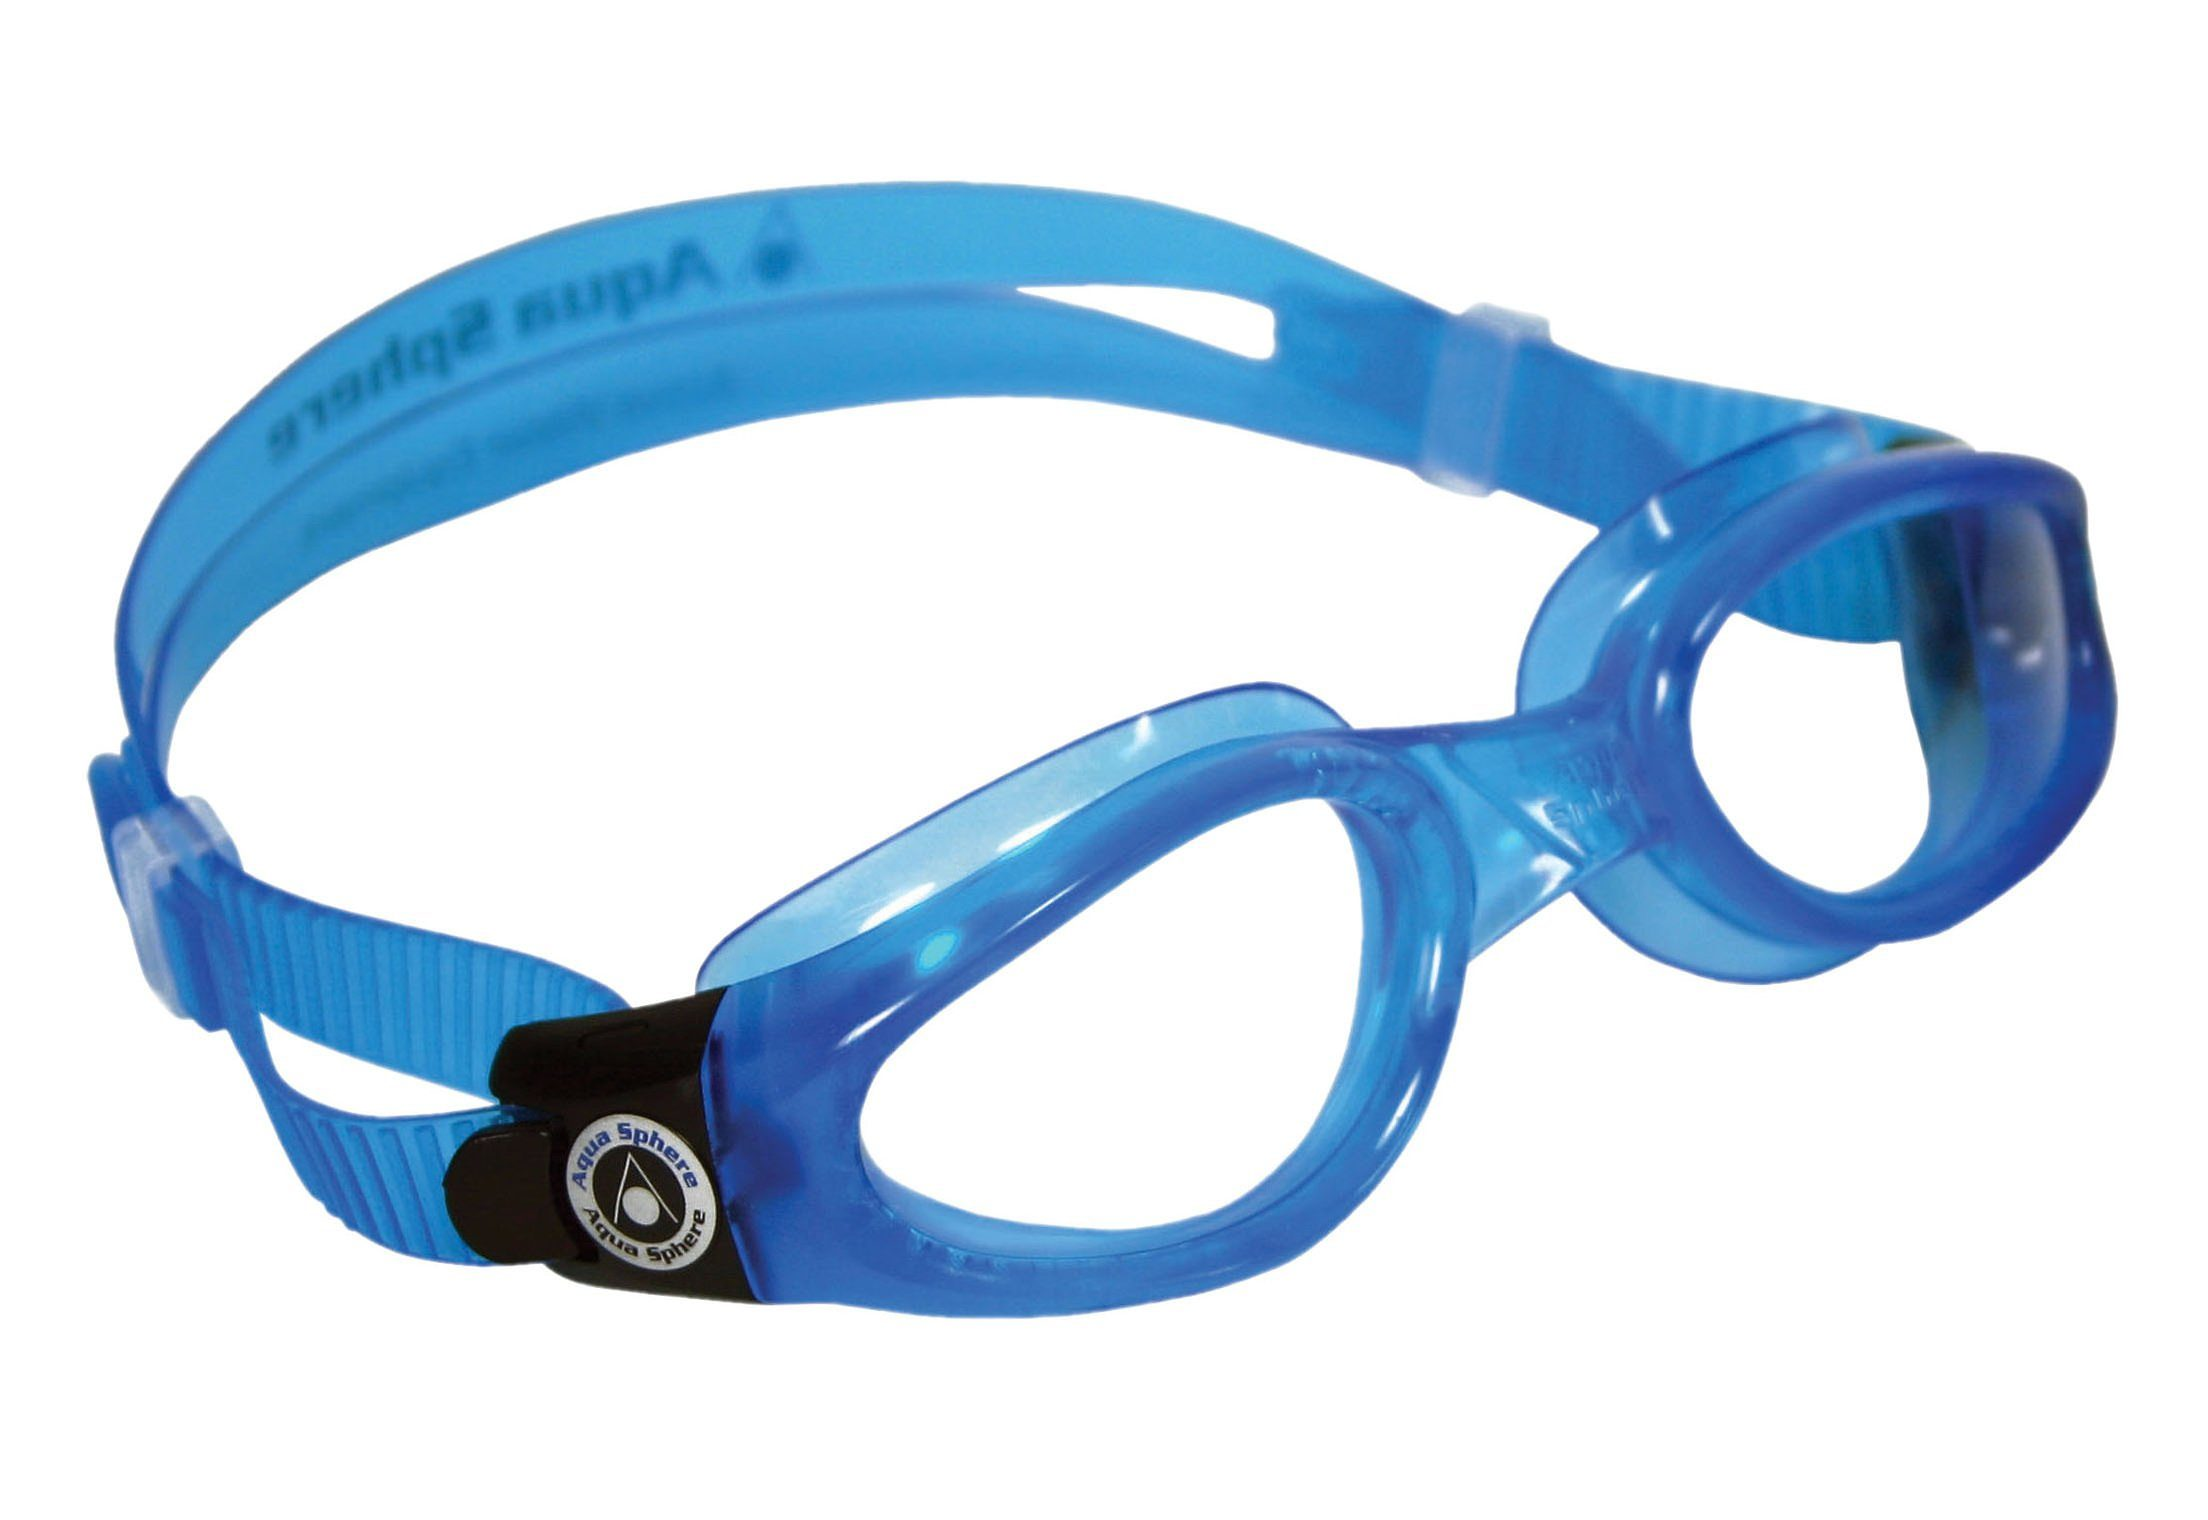 SCHWIMMBRILLE, Aqua Sphere, »KAIMAN SMALL helles Glas«